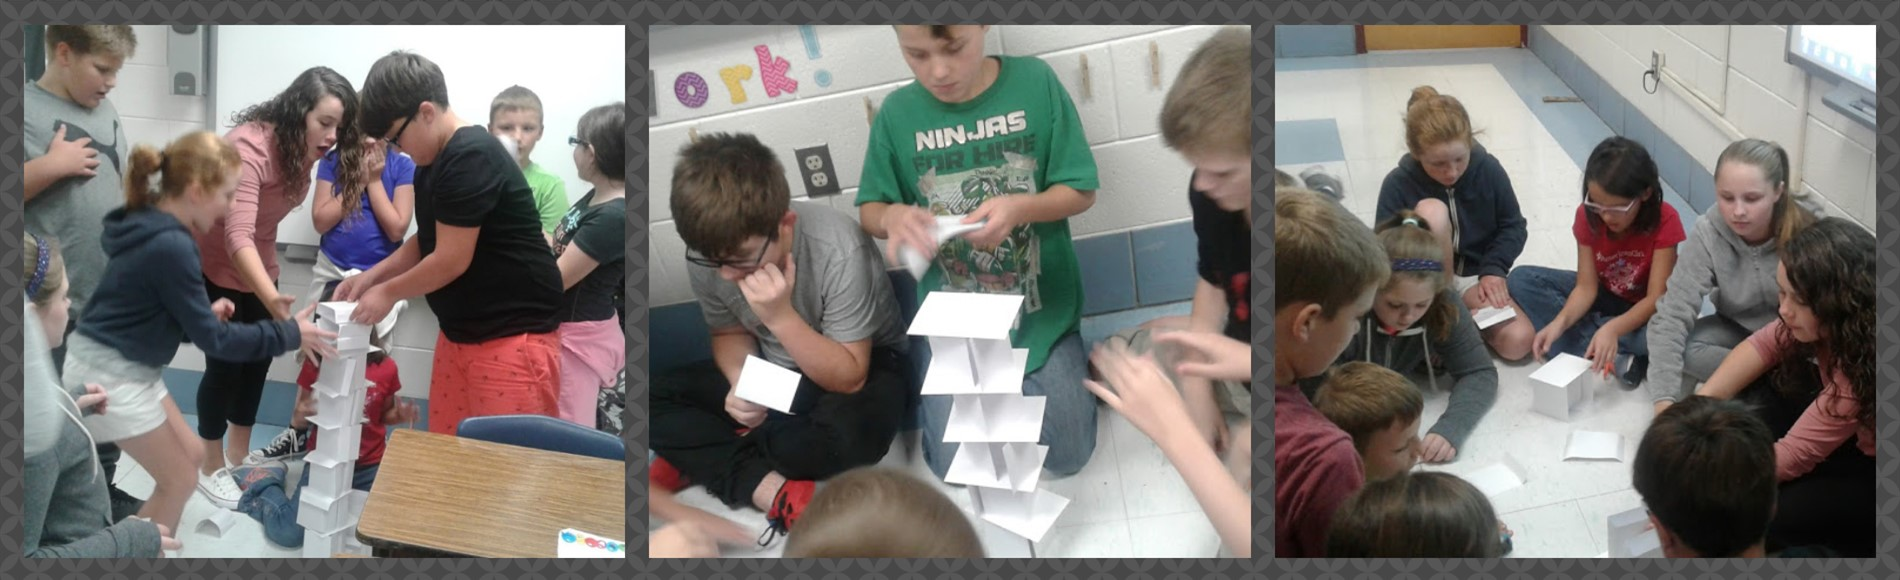 Students in Mrs. Begley's 5th grade class at WMES were split into two groups and given 100 index cards to construct the tallest tower within 30 minutes.